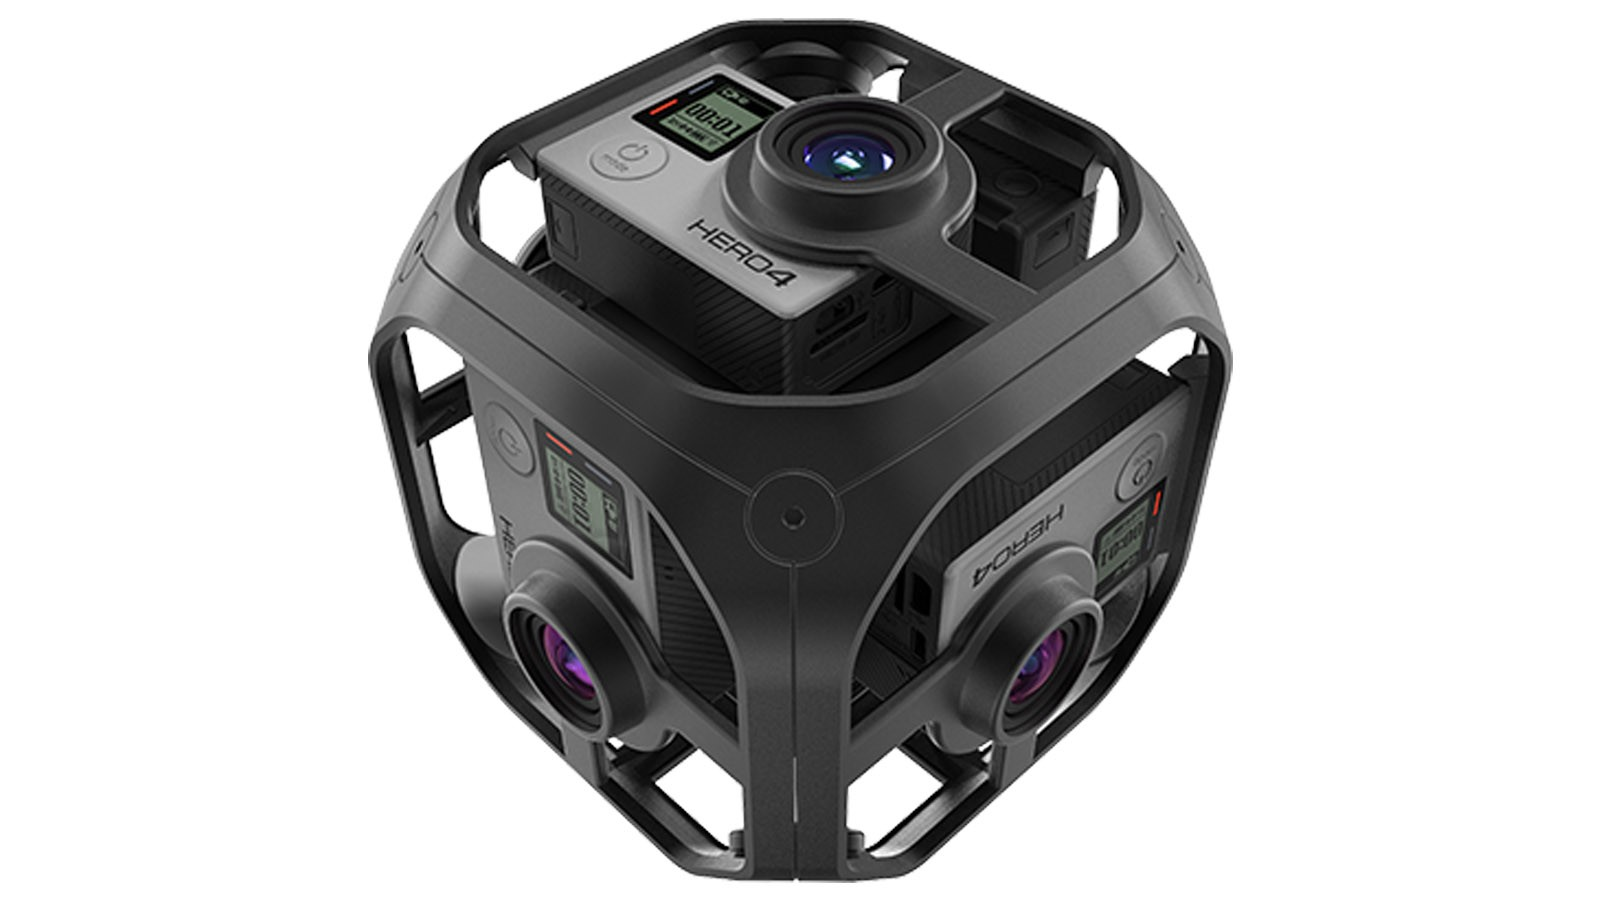 For now, the Omni only works with the Hero4 Black cameras